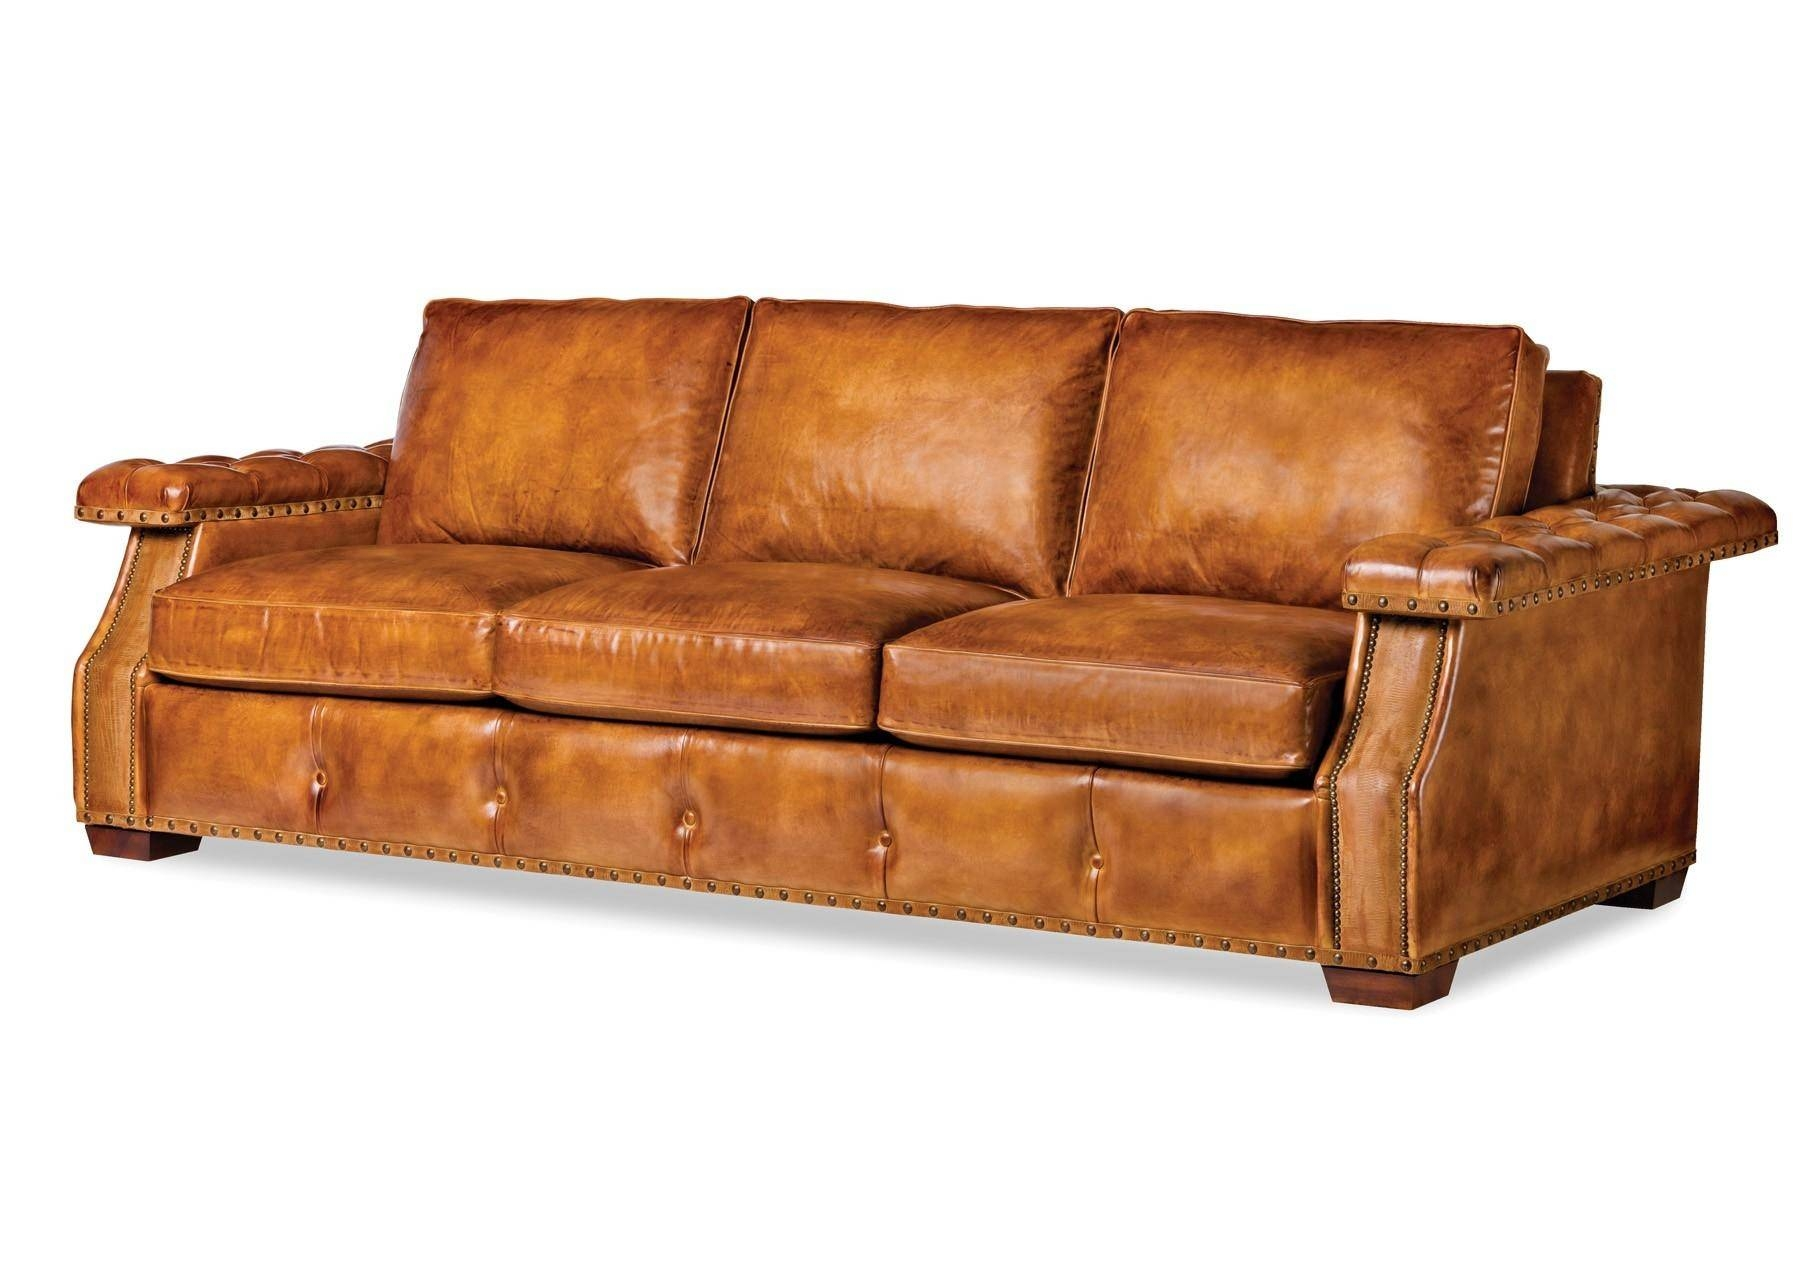 2017 Latest Camel Colored Leather Sofas | Sofa Ideas within Camel Colored Leather Sofas (Image 2 of 15)